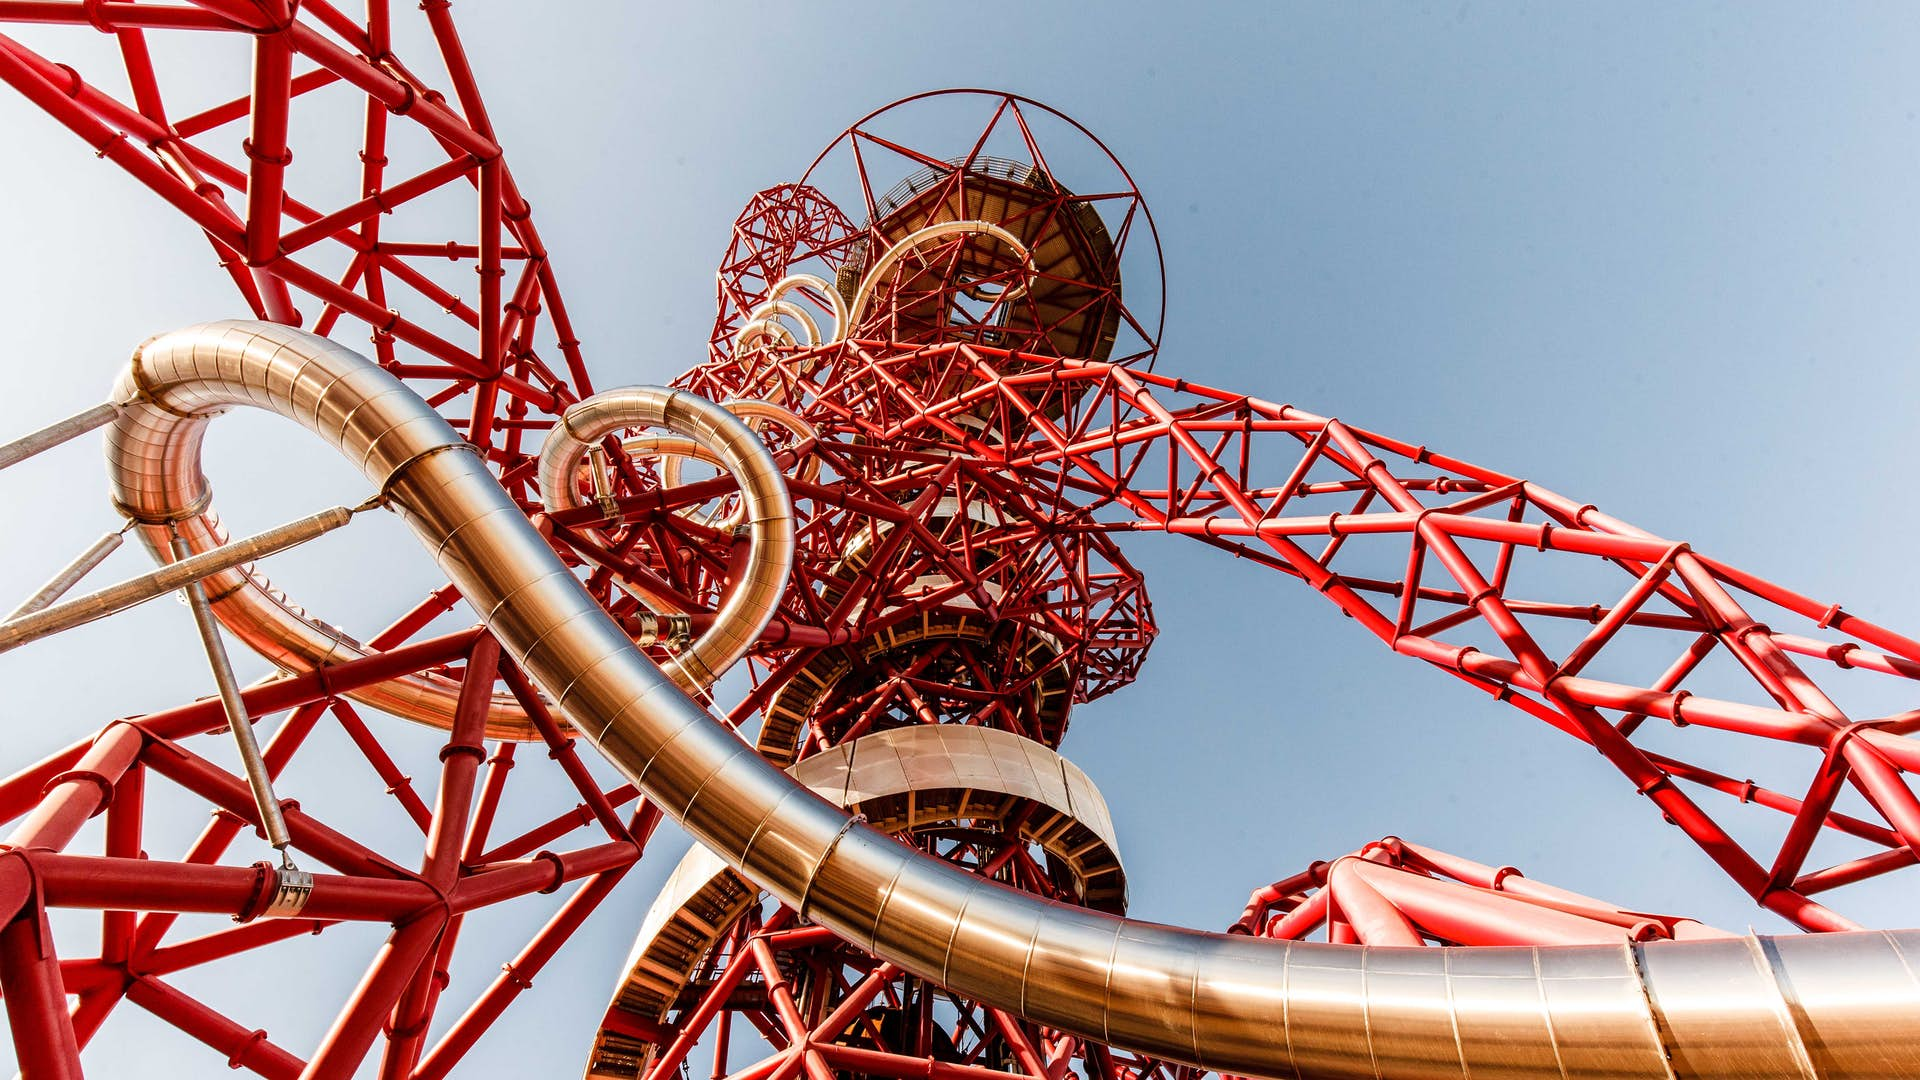 ArcelorMittal Orbit's structure and slide